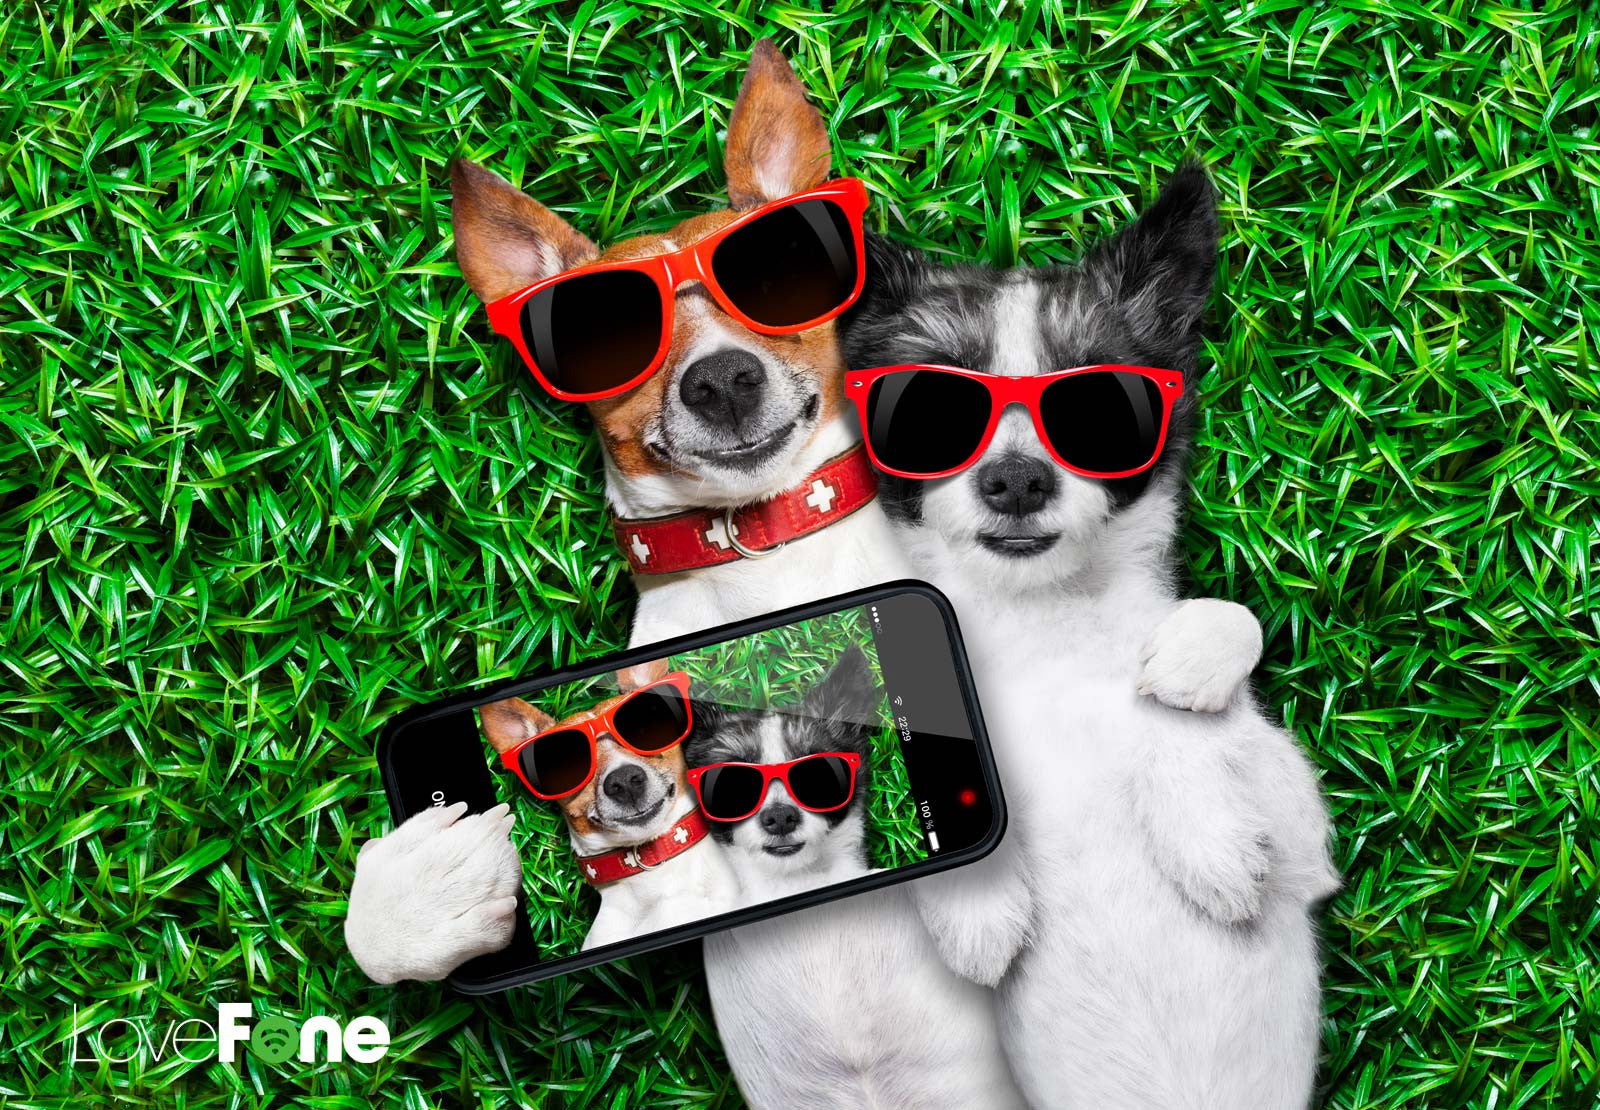 Finding love with your phone this Valentine's Day - Lovefone, London